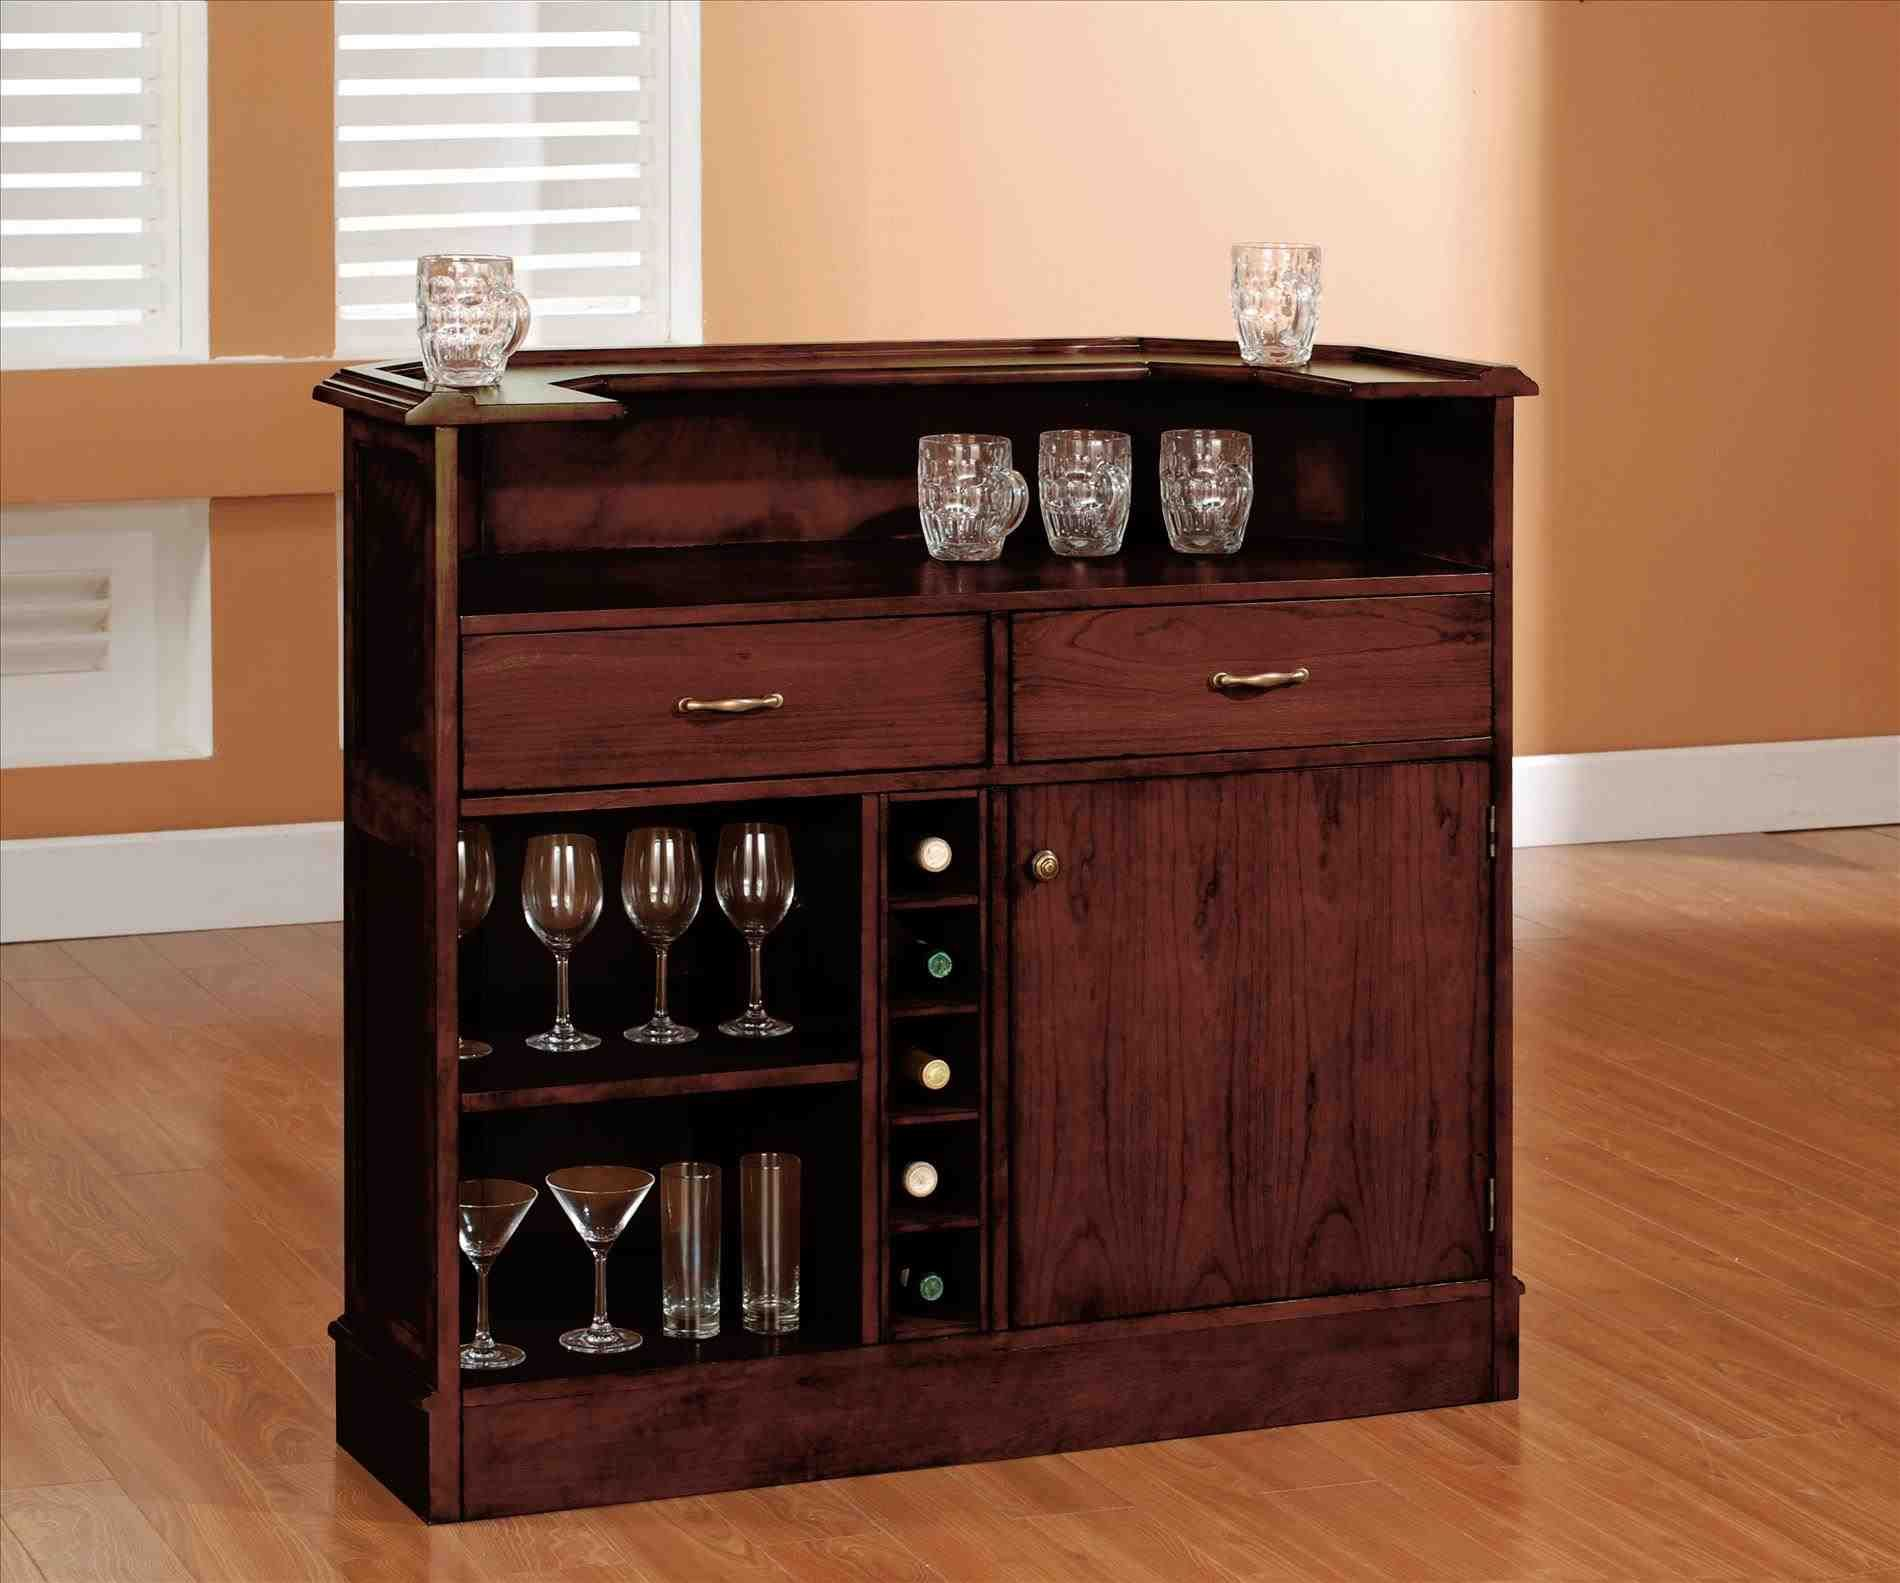 Home Bar Cabinet Furniture More Home Bar Ideas here